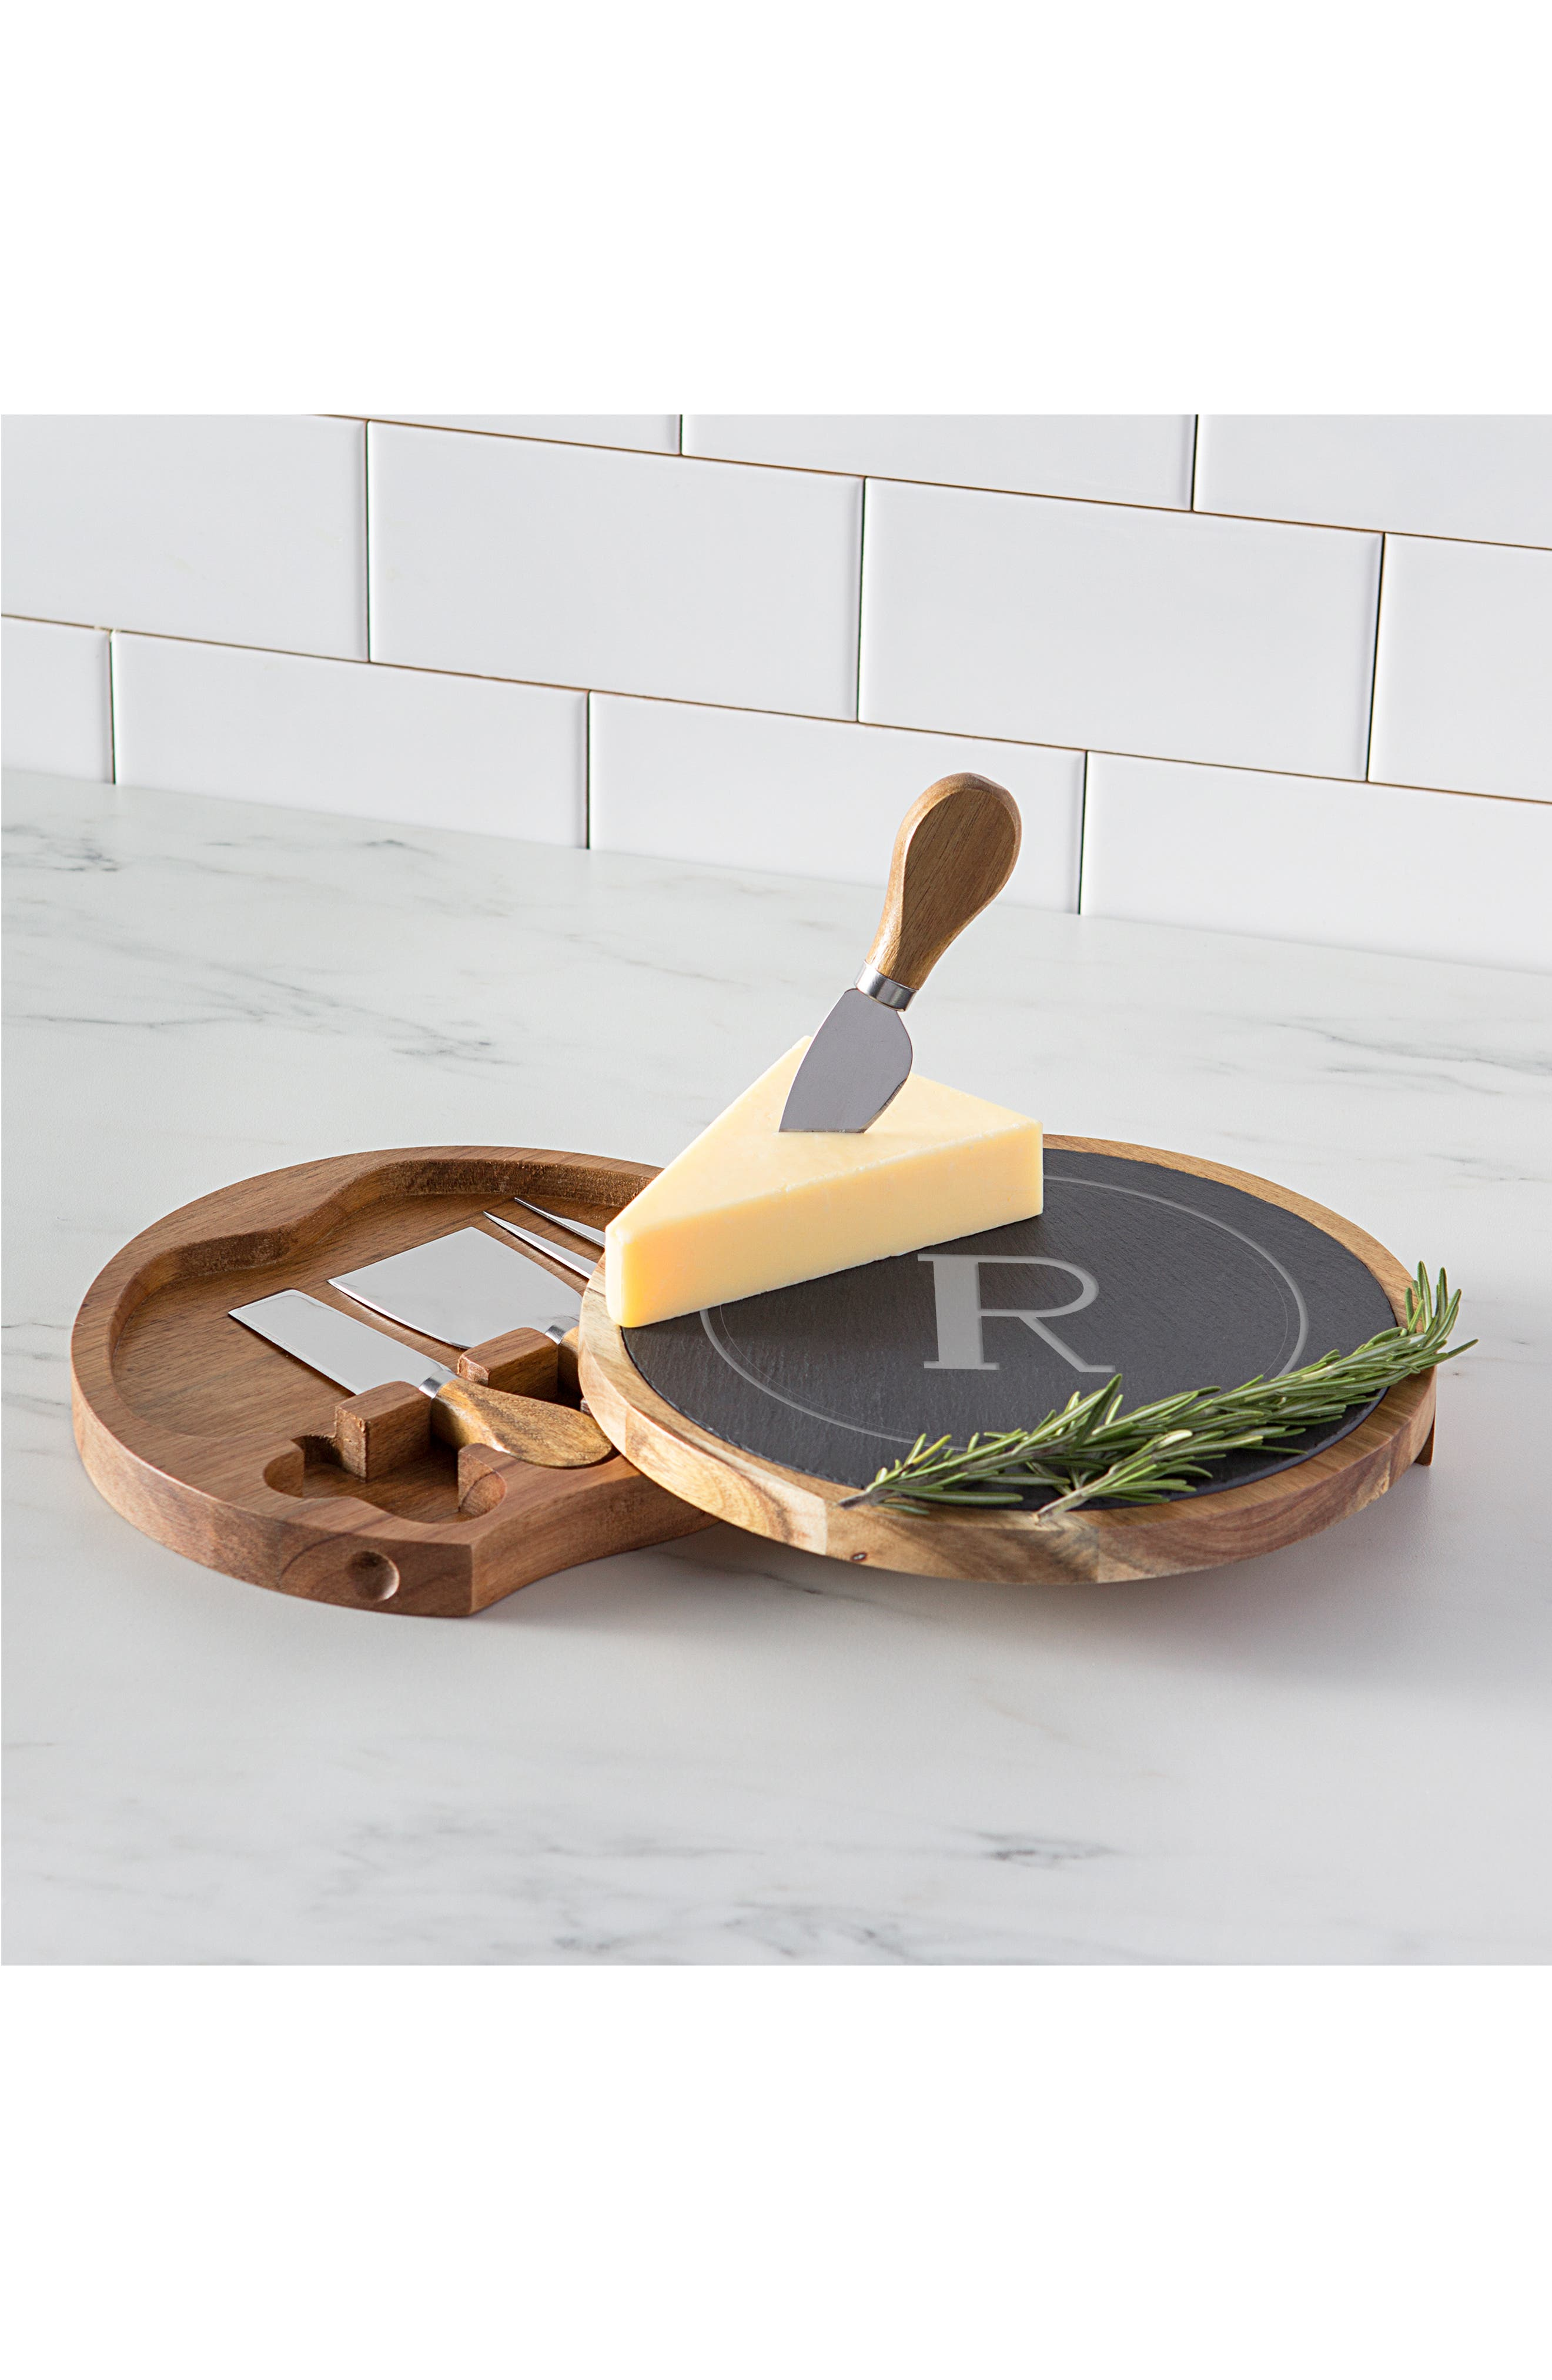 Monogram 5-Piece Cheese Board & Utensil Set,                             Alternate thumbnail 6, color,                             BROWN